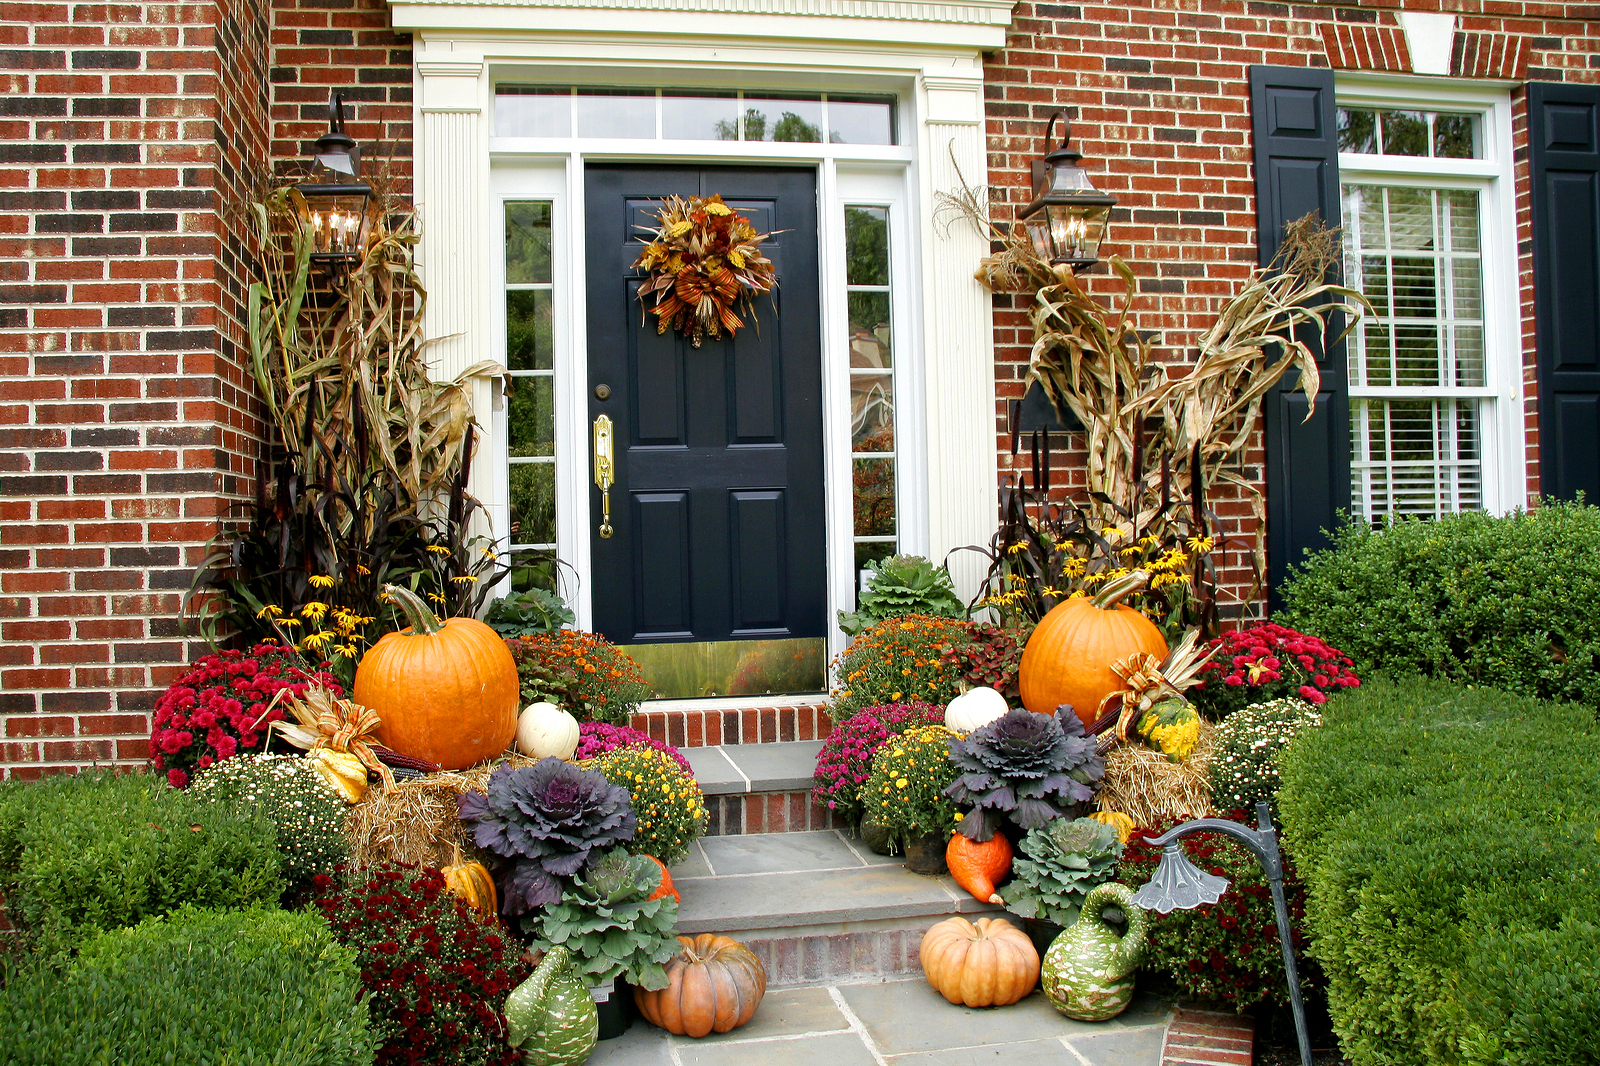 Traditional brick colonial dressed up for fall with colorful mums and harvest gourds